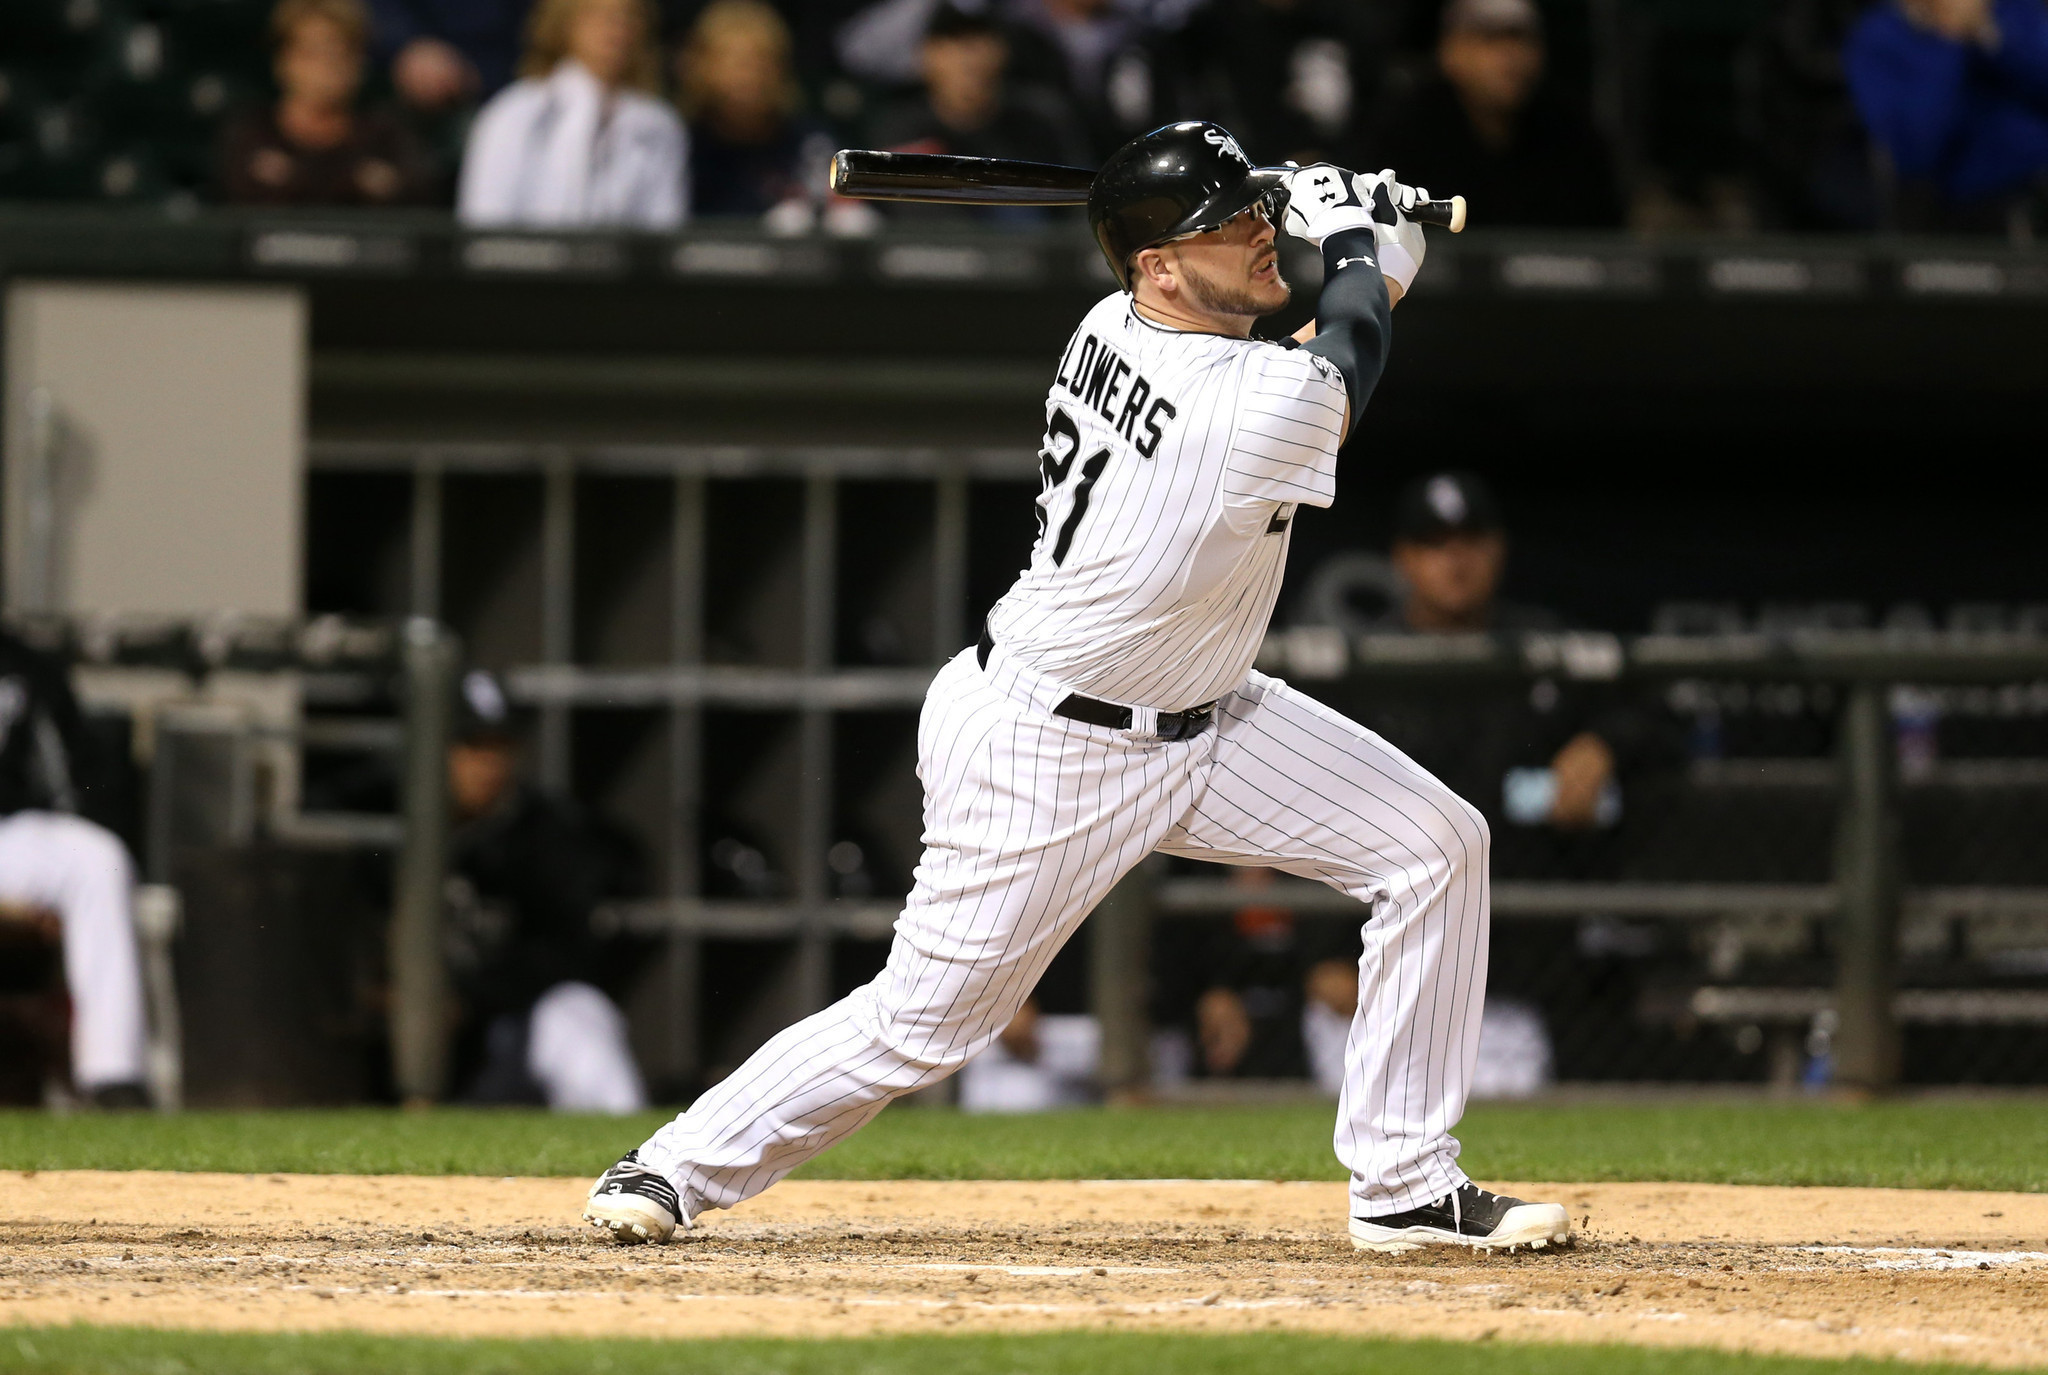 White sox decline to tender contract to catcher tyler flowers white sox decline to tender contract to catcher tyler flowers chicago tribune mightylinksfo